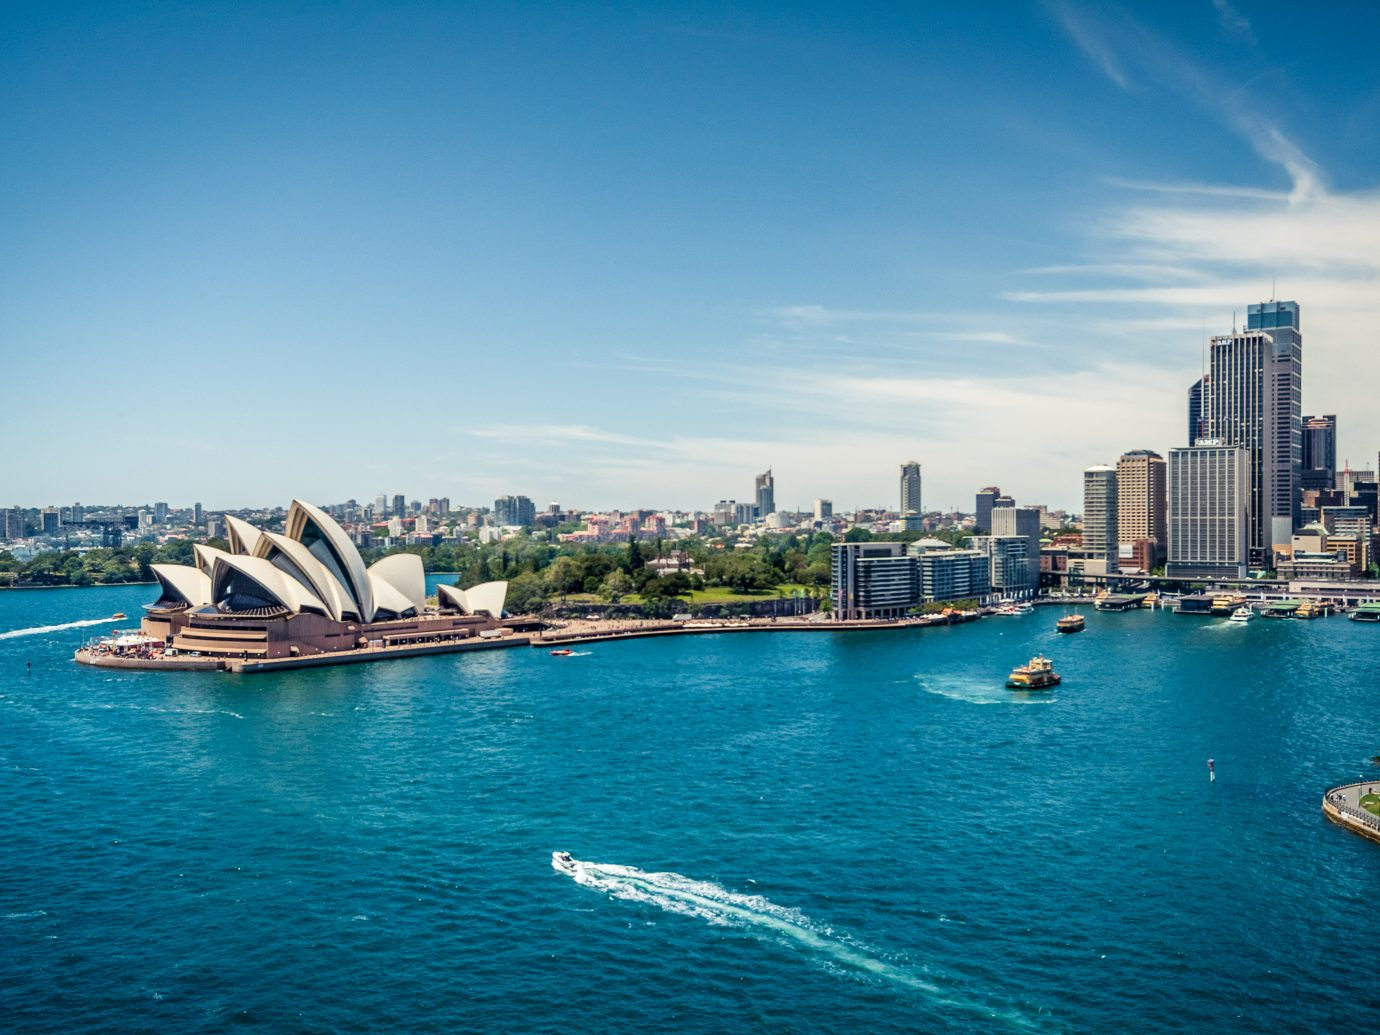 Sydney Opera House and Circular quay